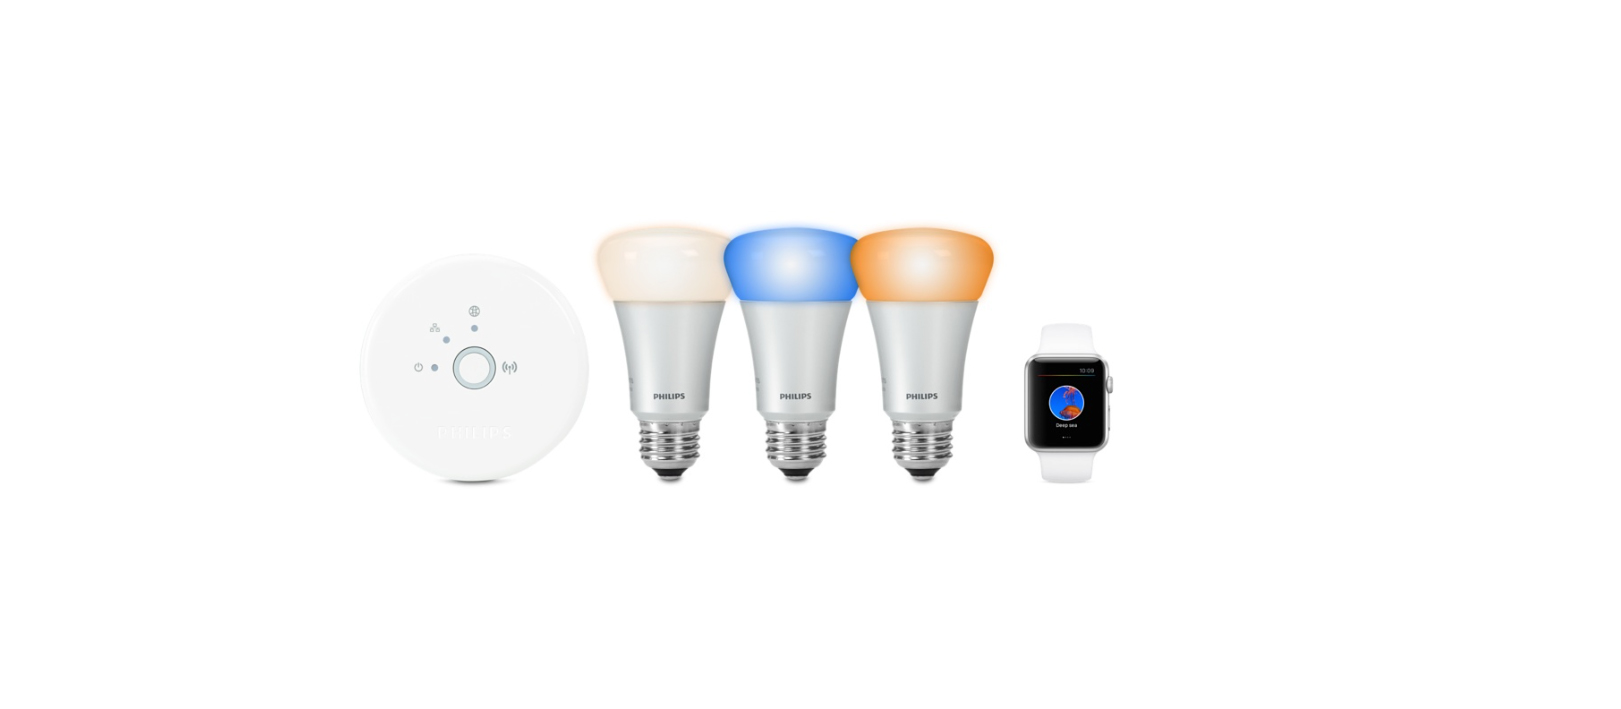 Apple HomeKit support will reportedly arrive for the Philips Hue lights next month